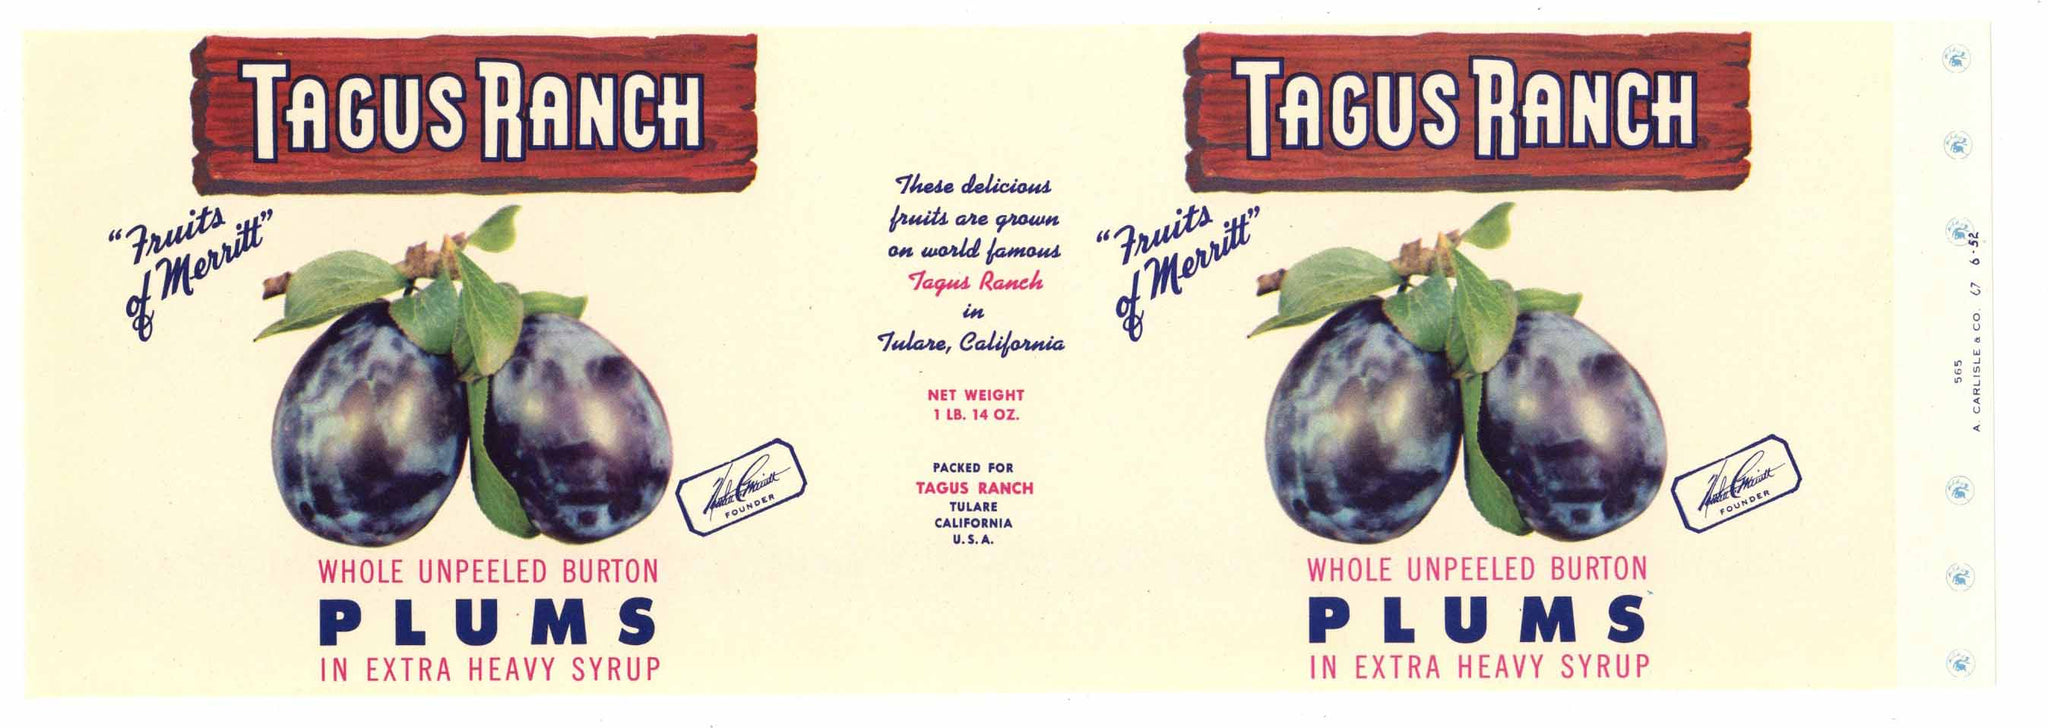 Tagus Ranch Brand Vintage Tulare Plum Can Label